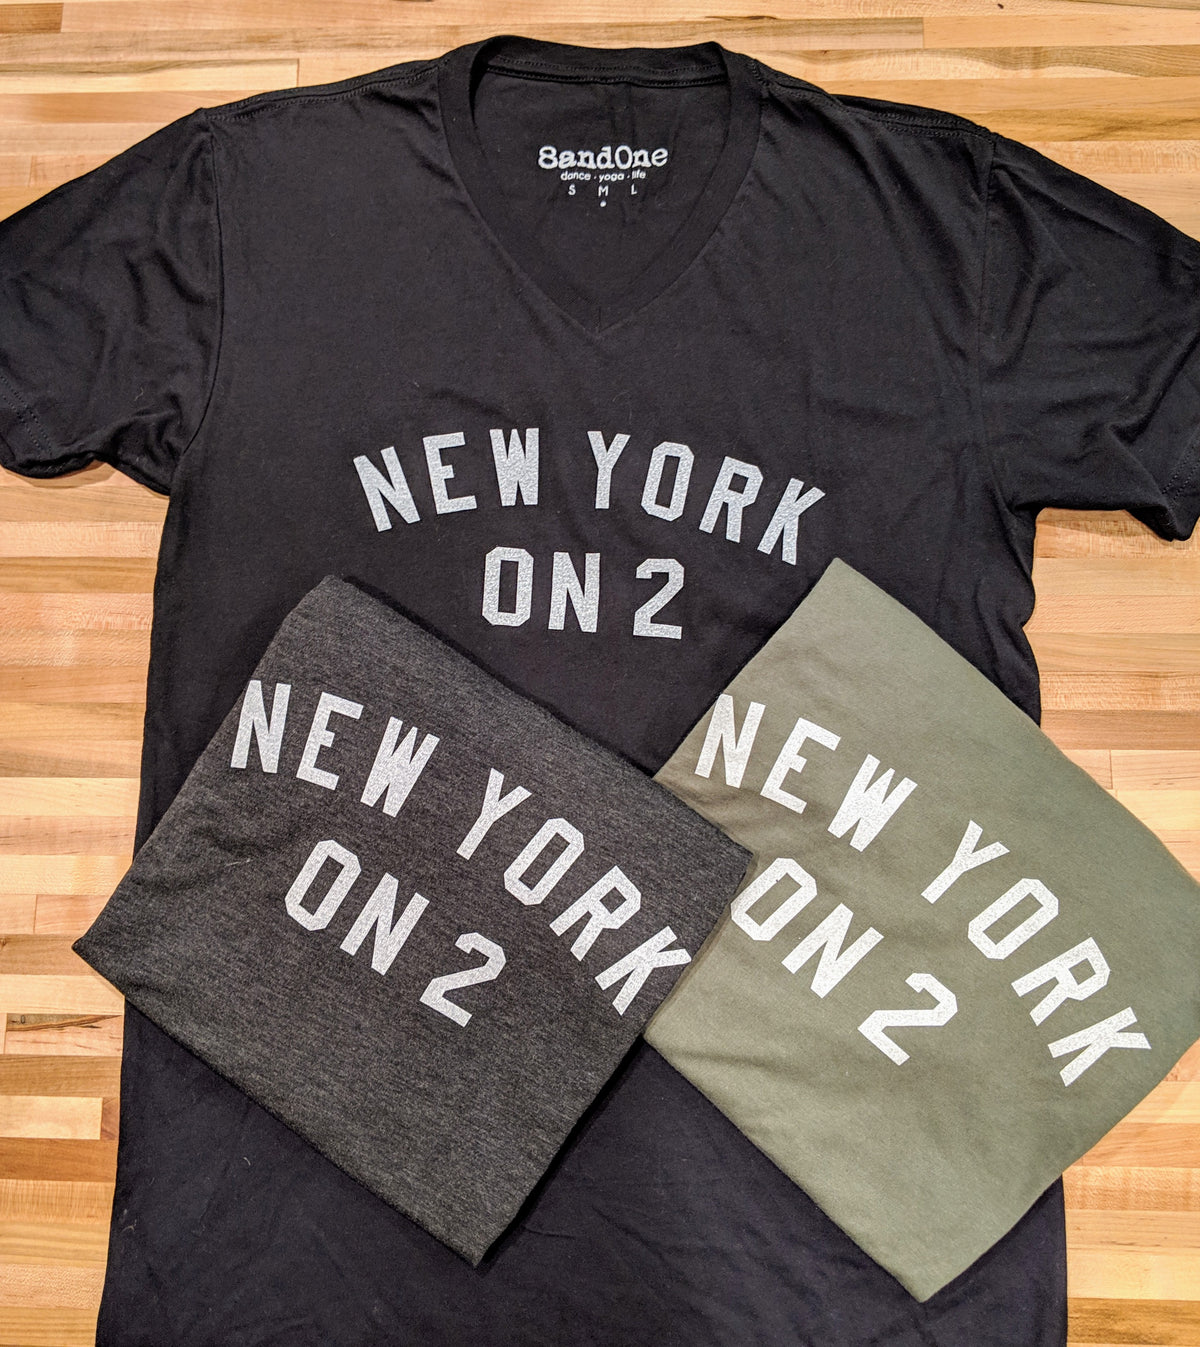 New York on 2 tee